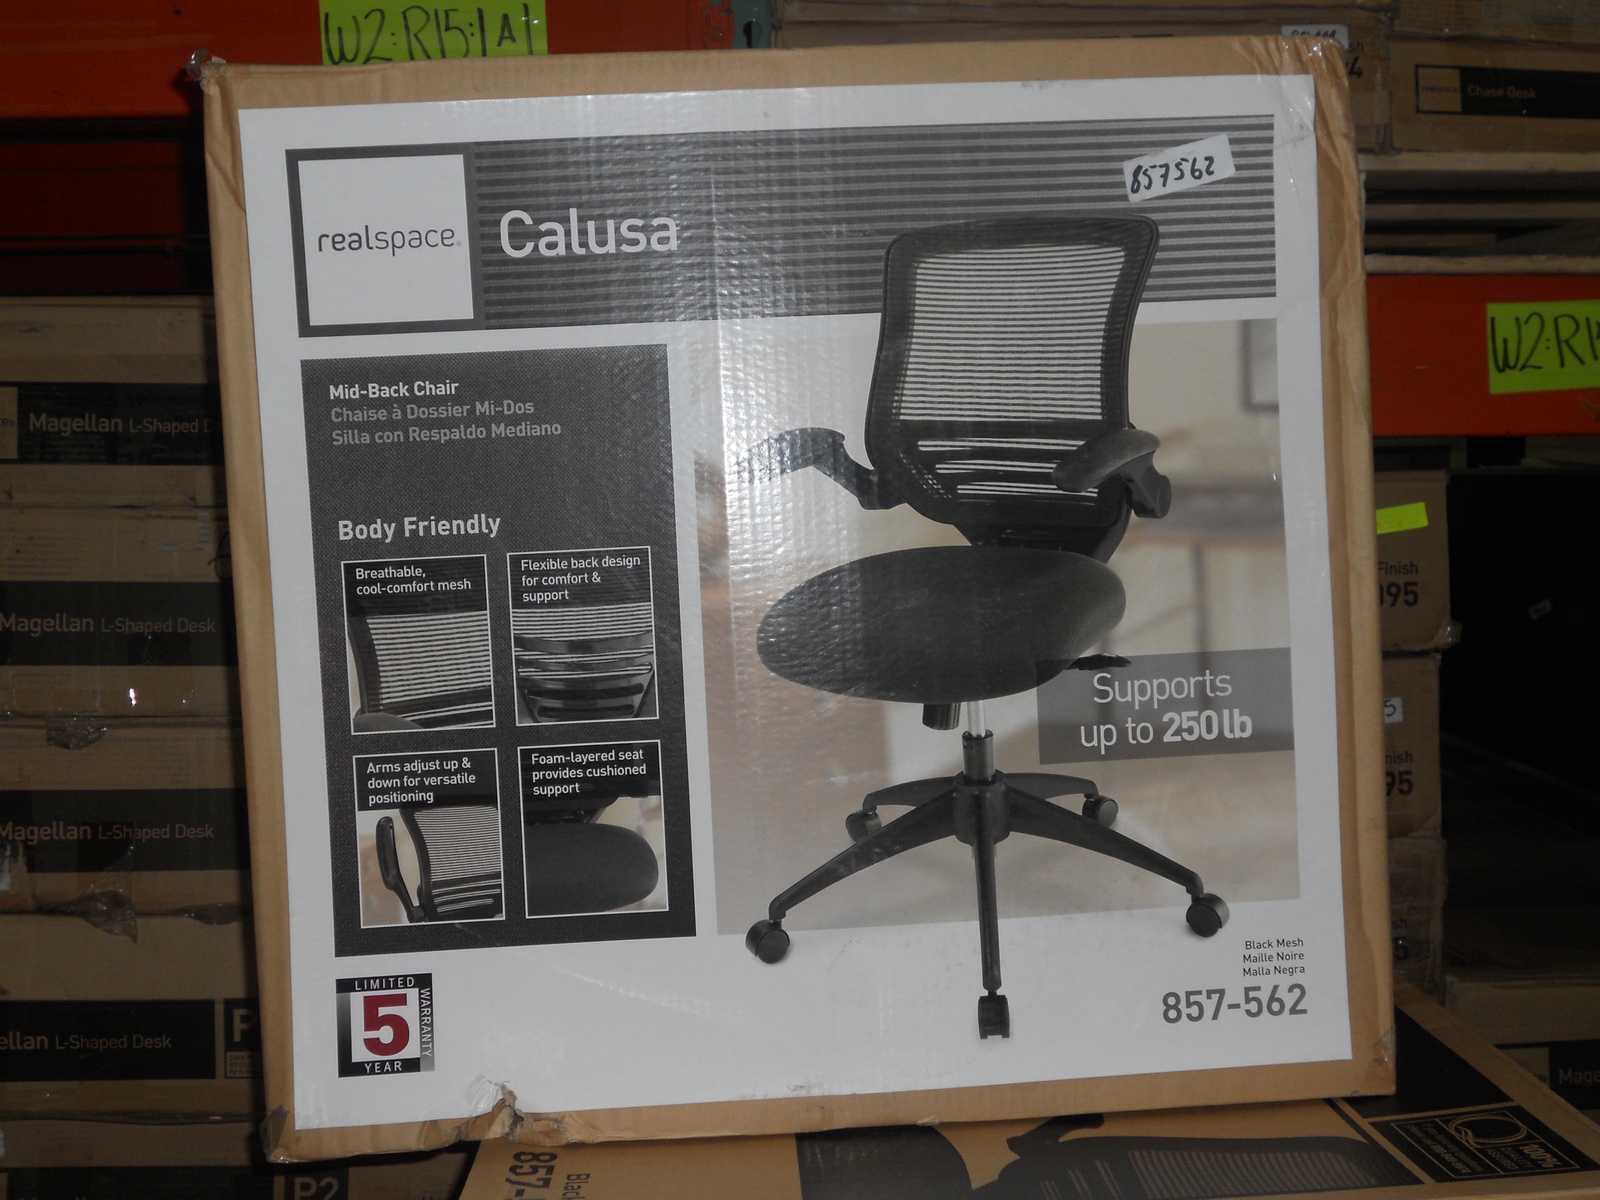 Realspace Chairs Realspace Calusa Mesh Mid Back Chair Black 857562 Chairs